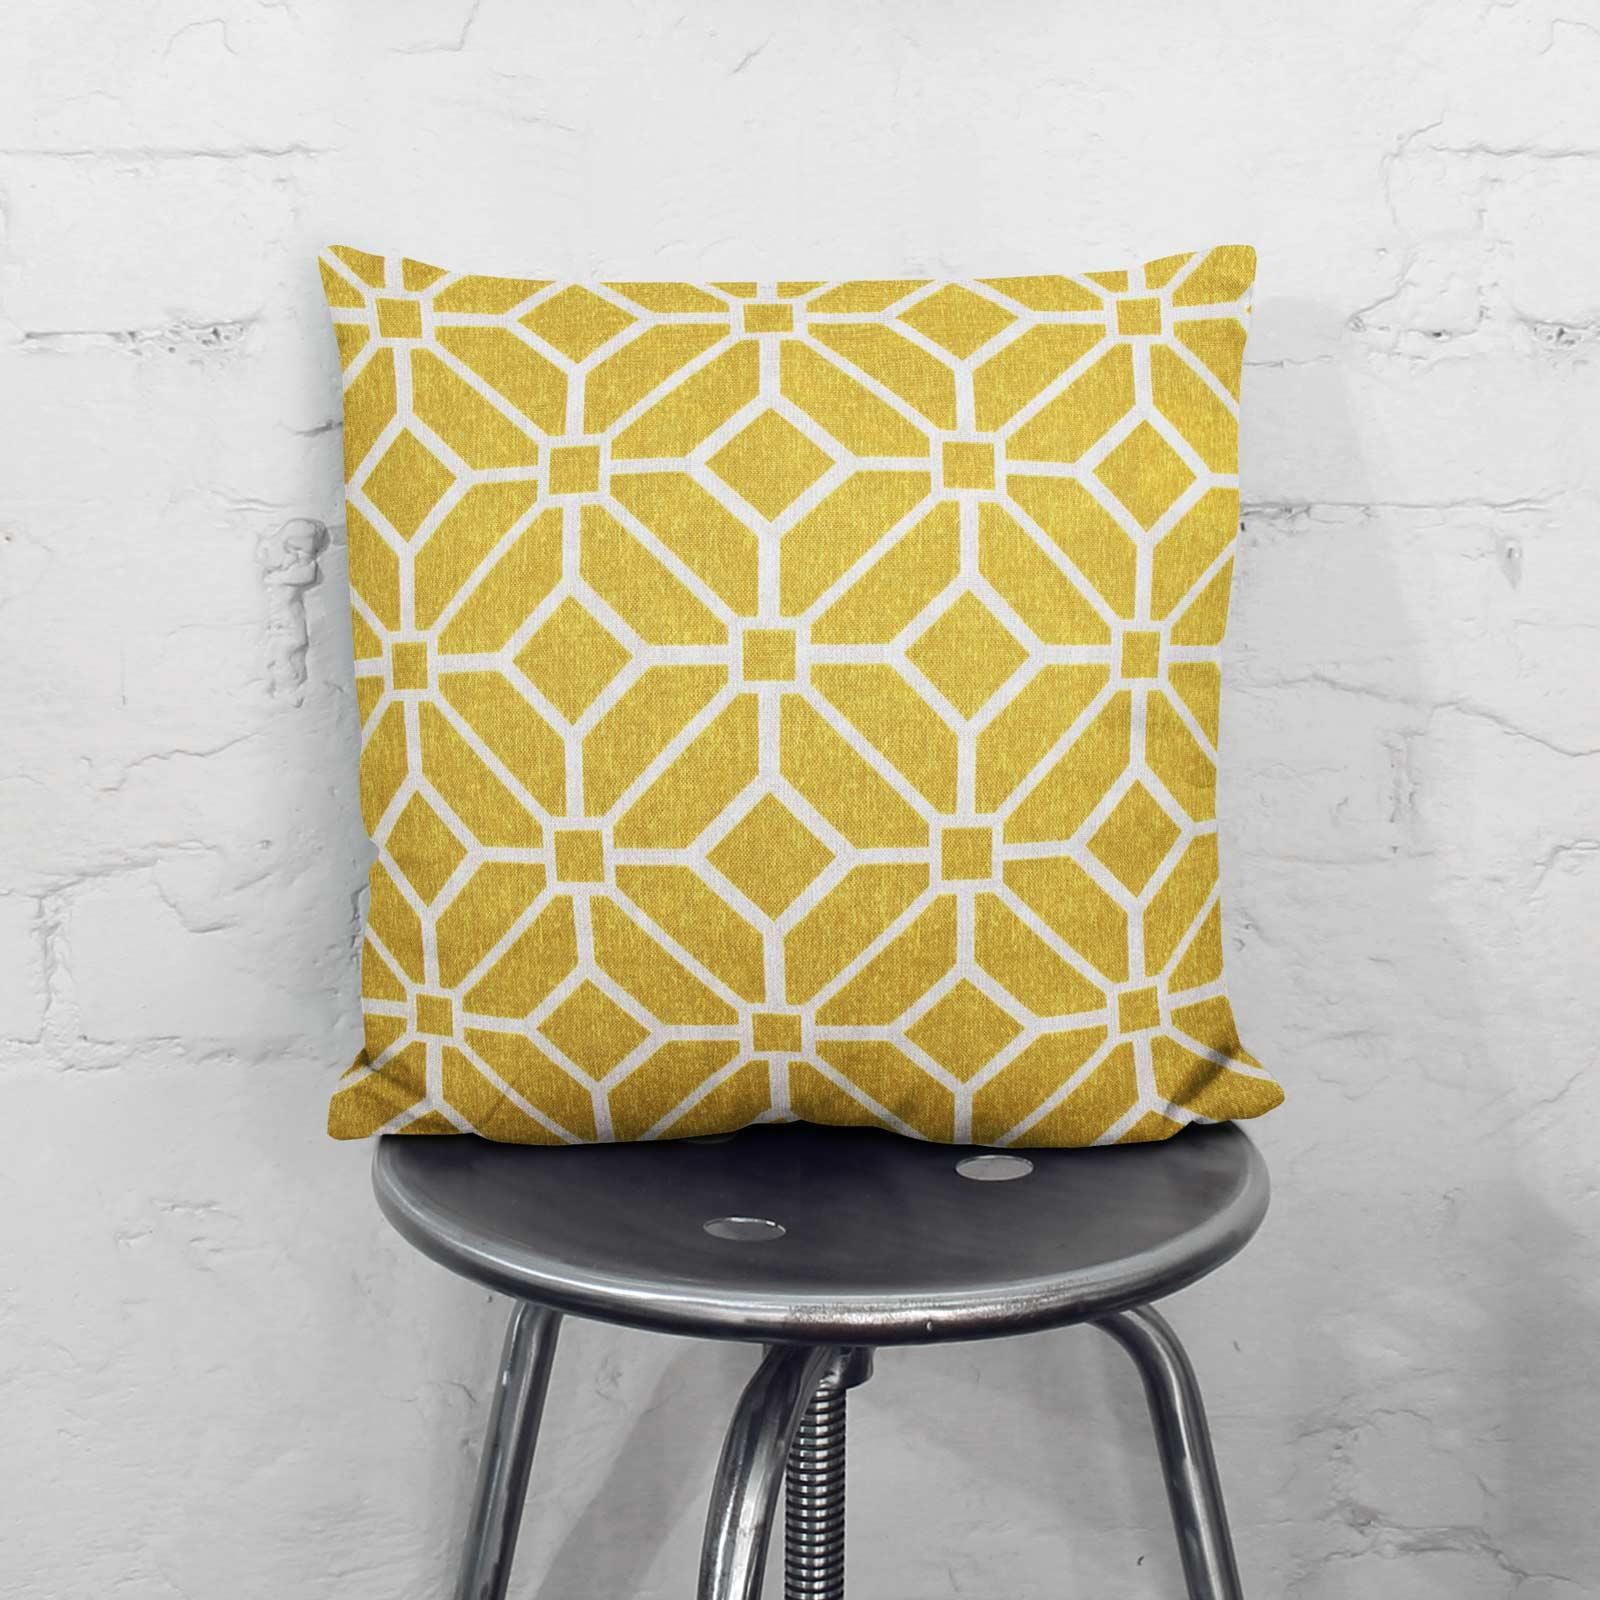 Grey-Ochre-Mustard-Cushion-Cover-Collection-17-034-18-034-Covers-Filled-Cushions thumbnail 97